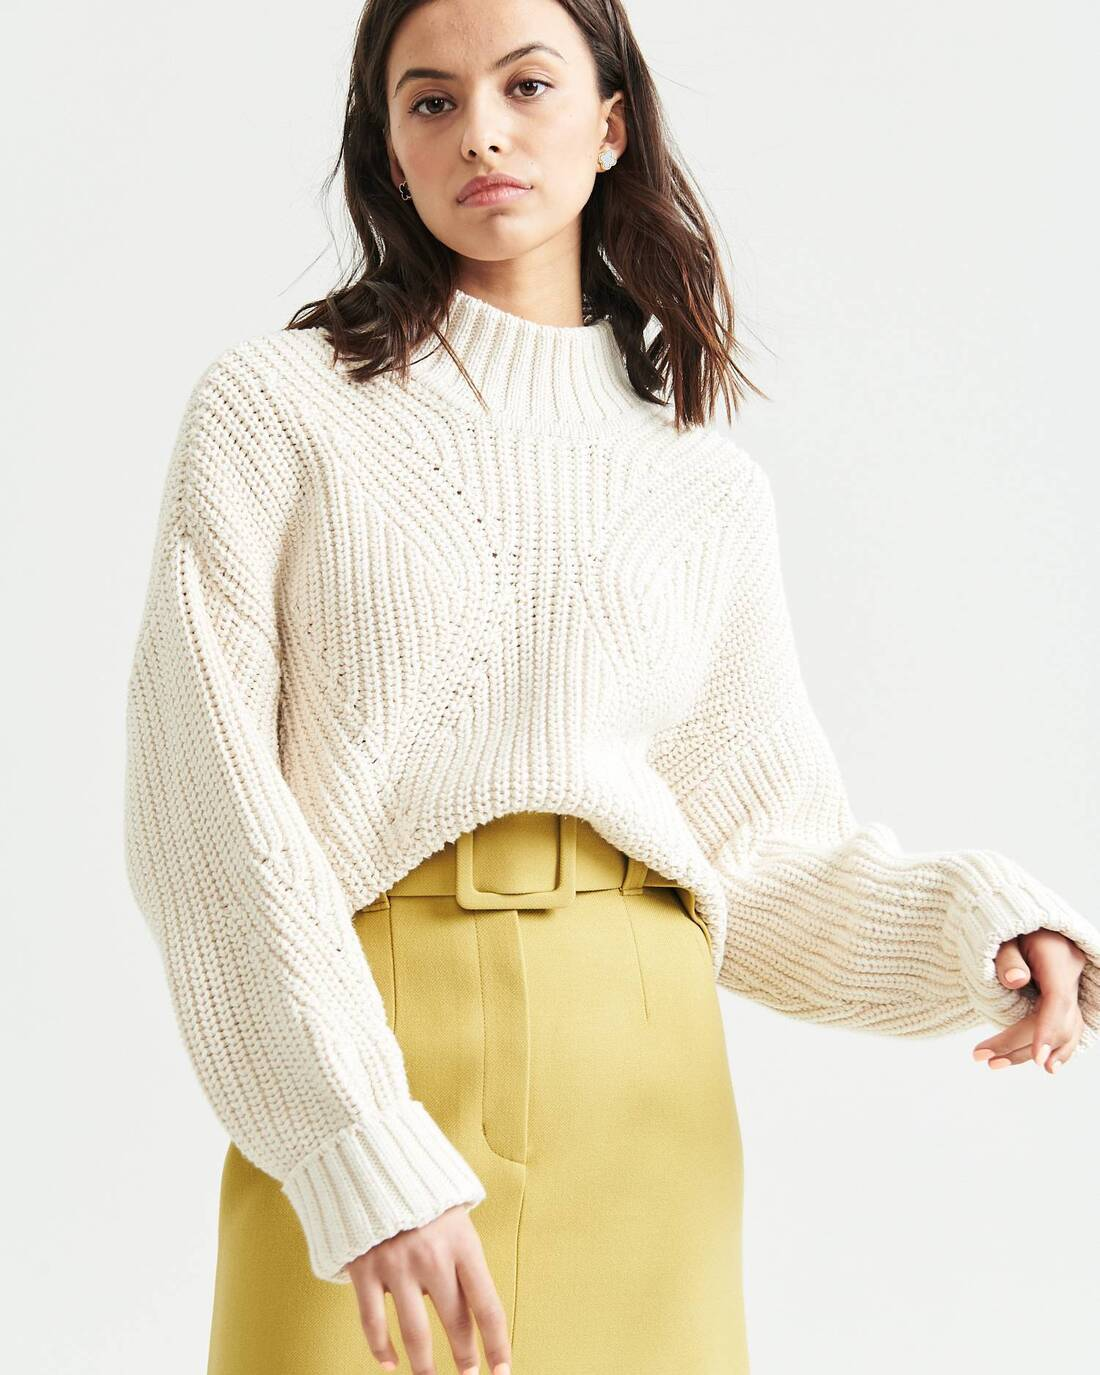 Oversize knit sweater